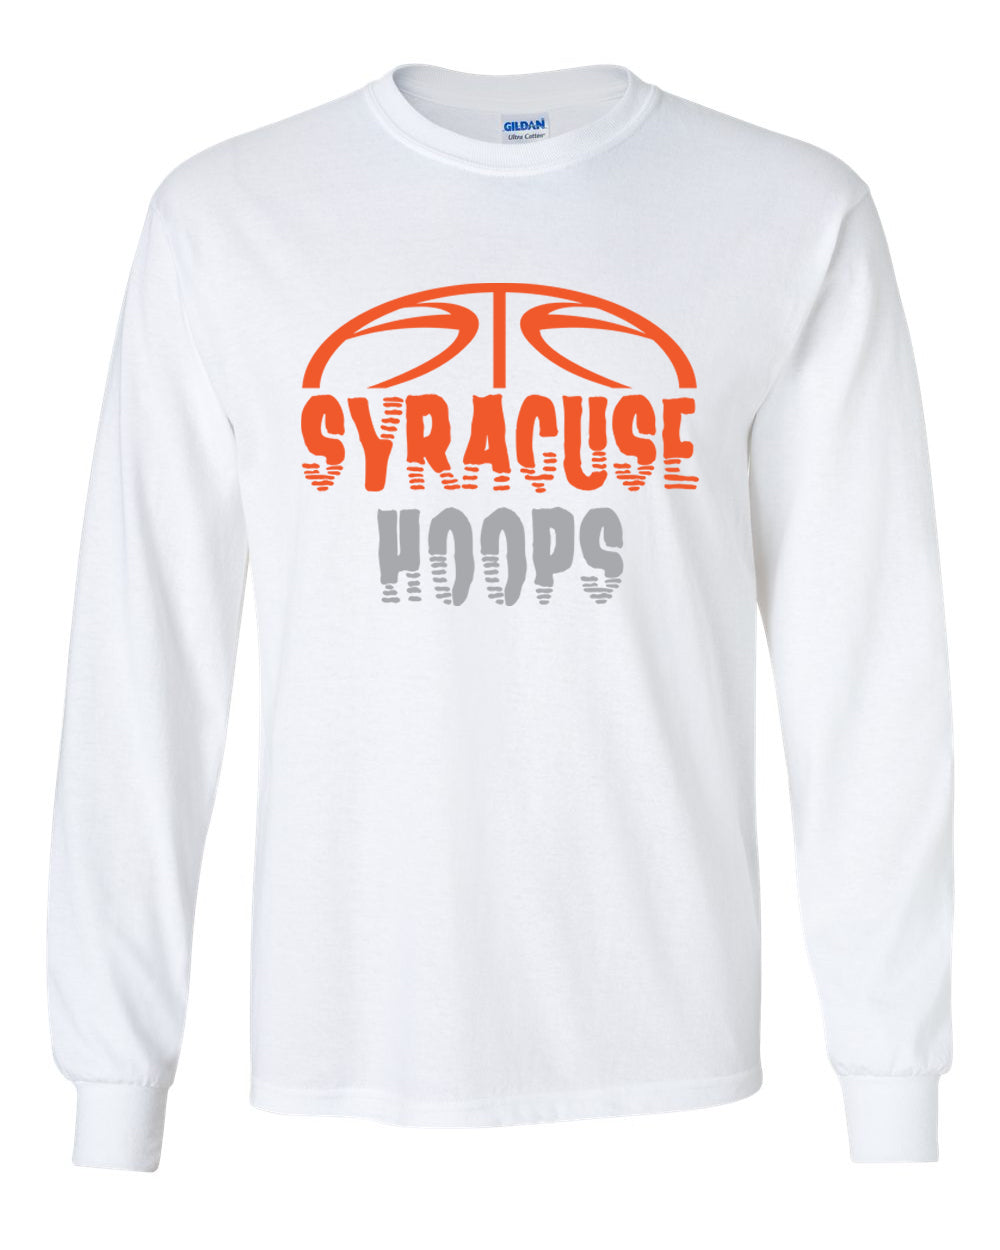 Hoops White Long sleeve